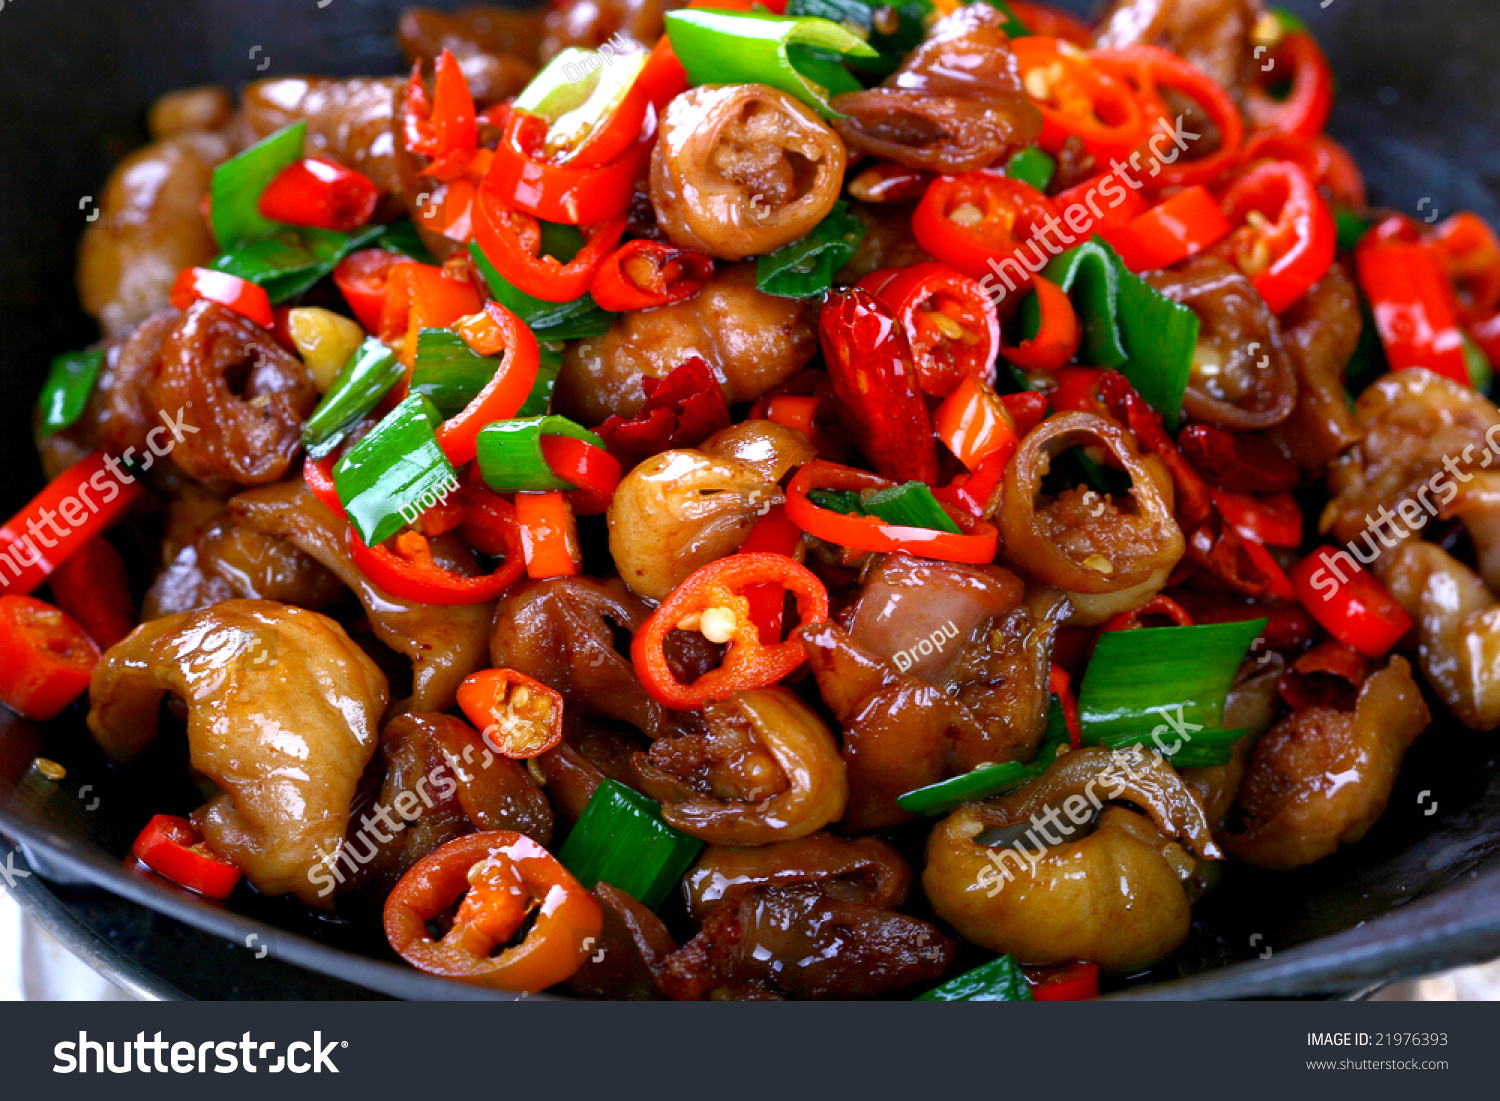 Delicious chinese food fried dish hot pepper sausage stock photo 21976393 shutterstock - Delicious chinese cuisine ...